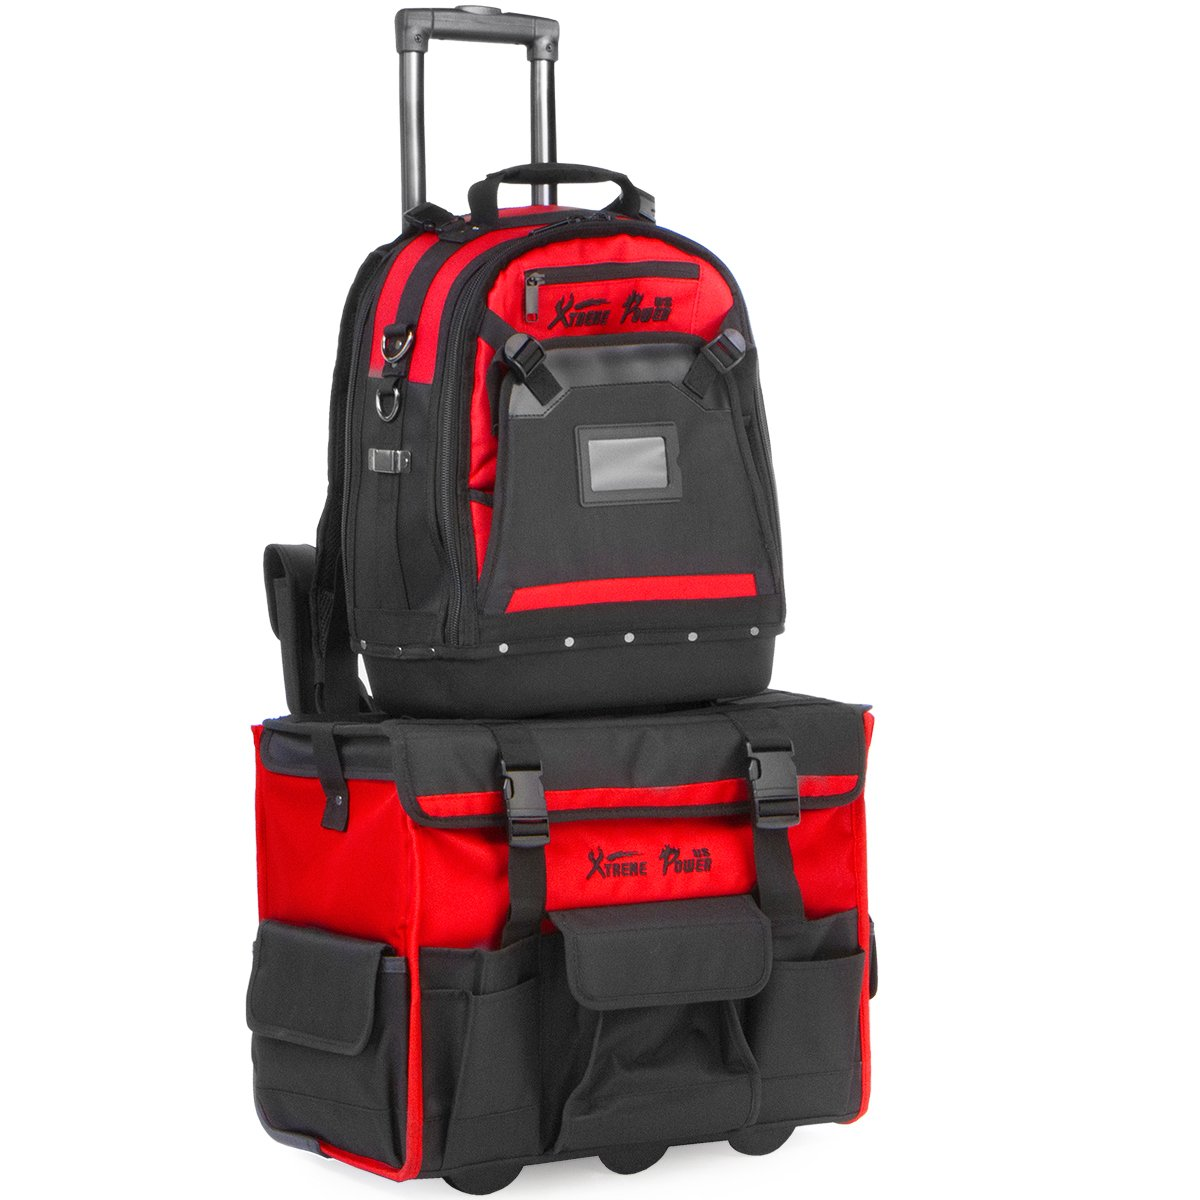 XtremepowerUS Tool Bag Organizer, Black and Red (Rolling Tool Bag+Tool Backpack)